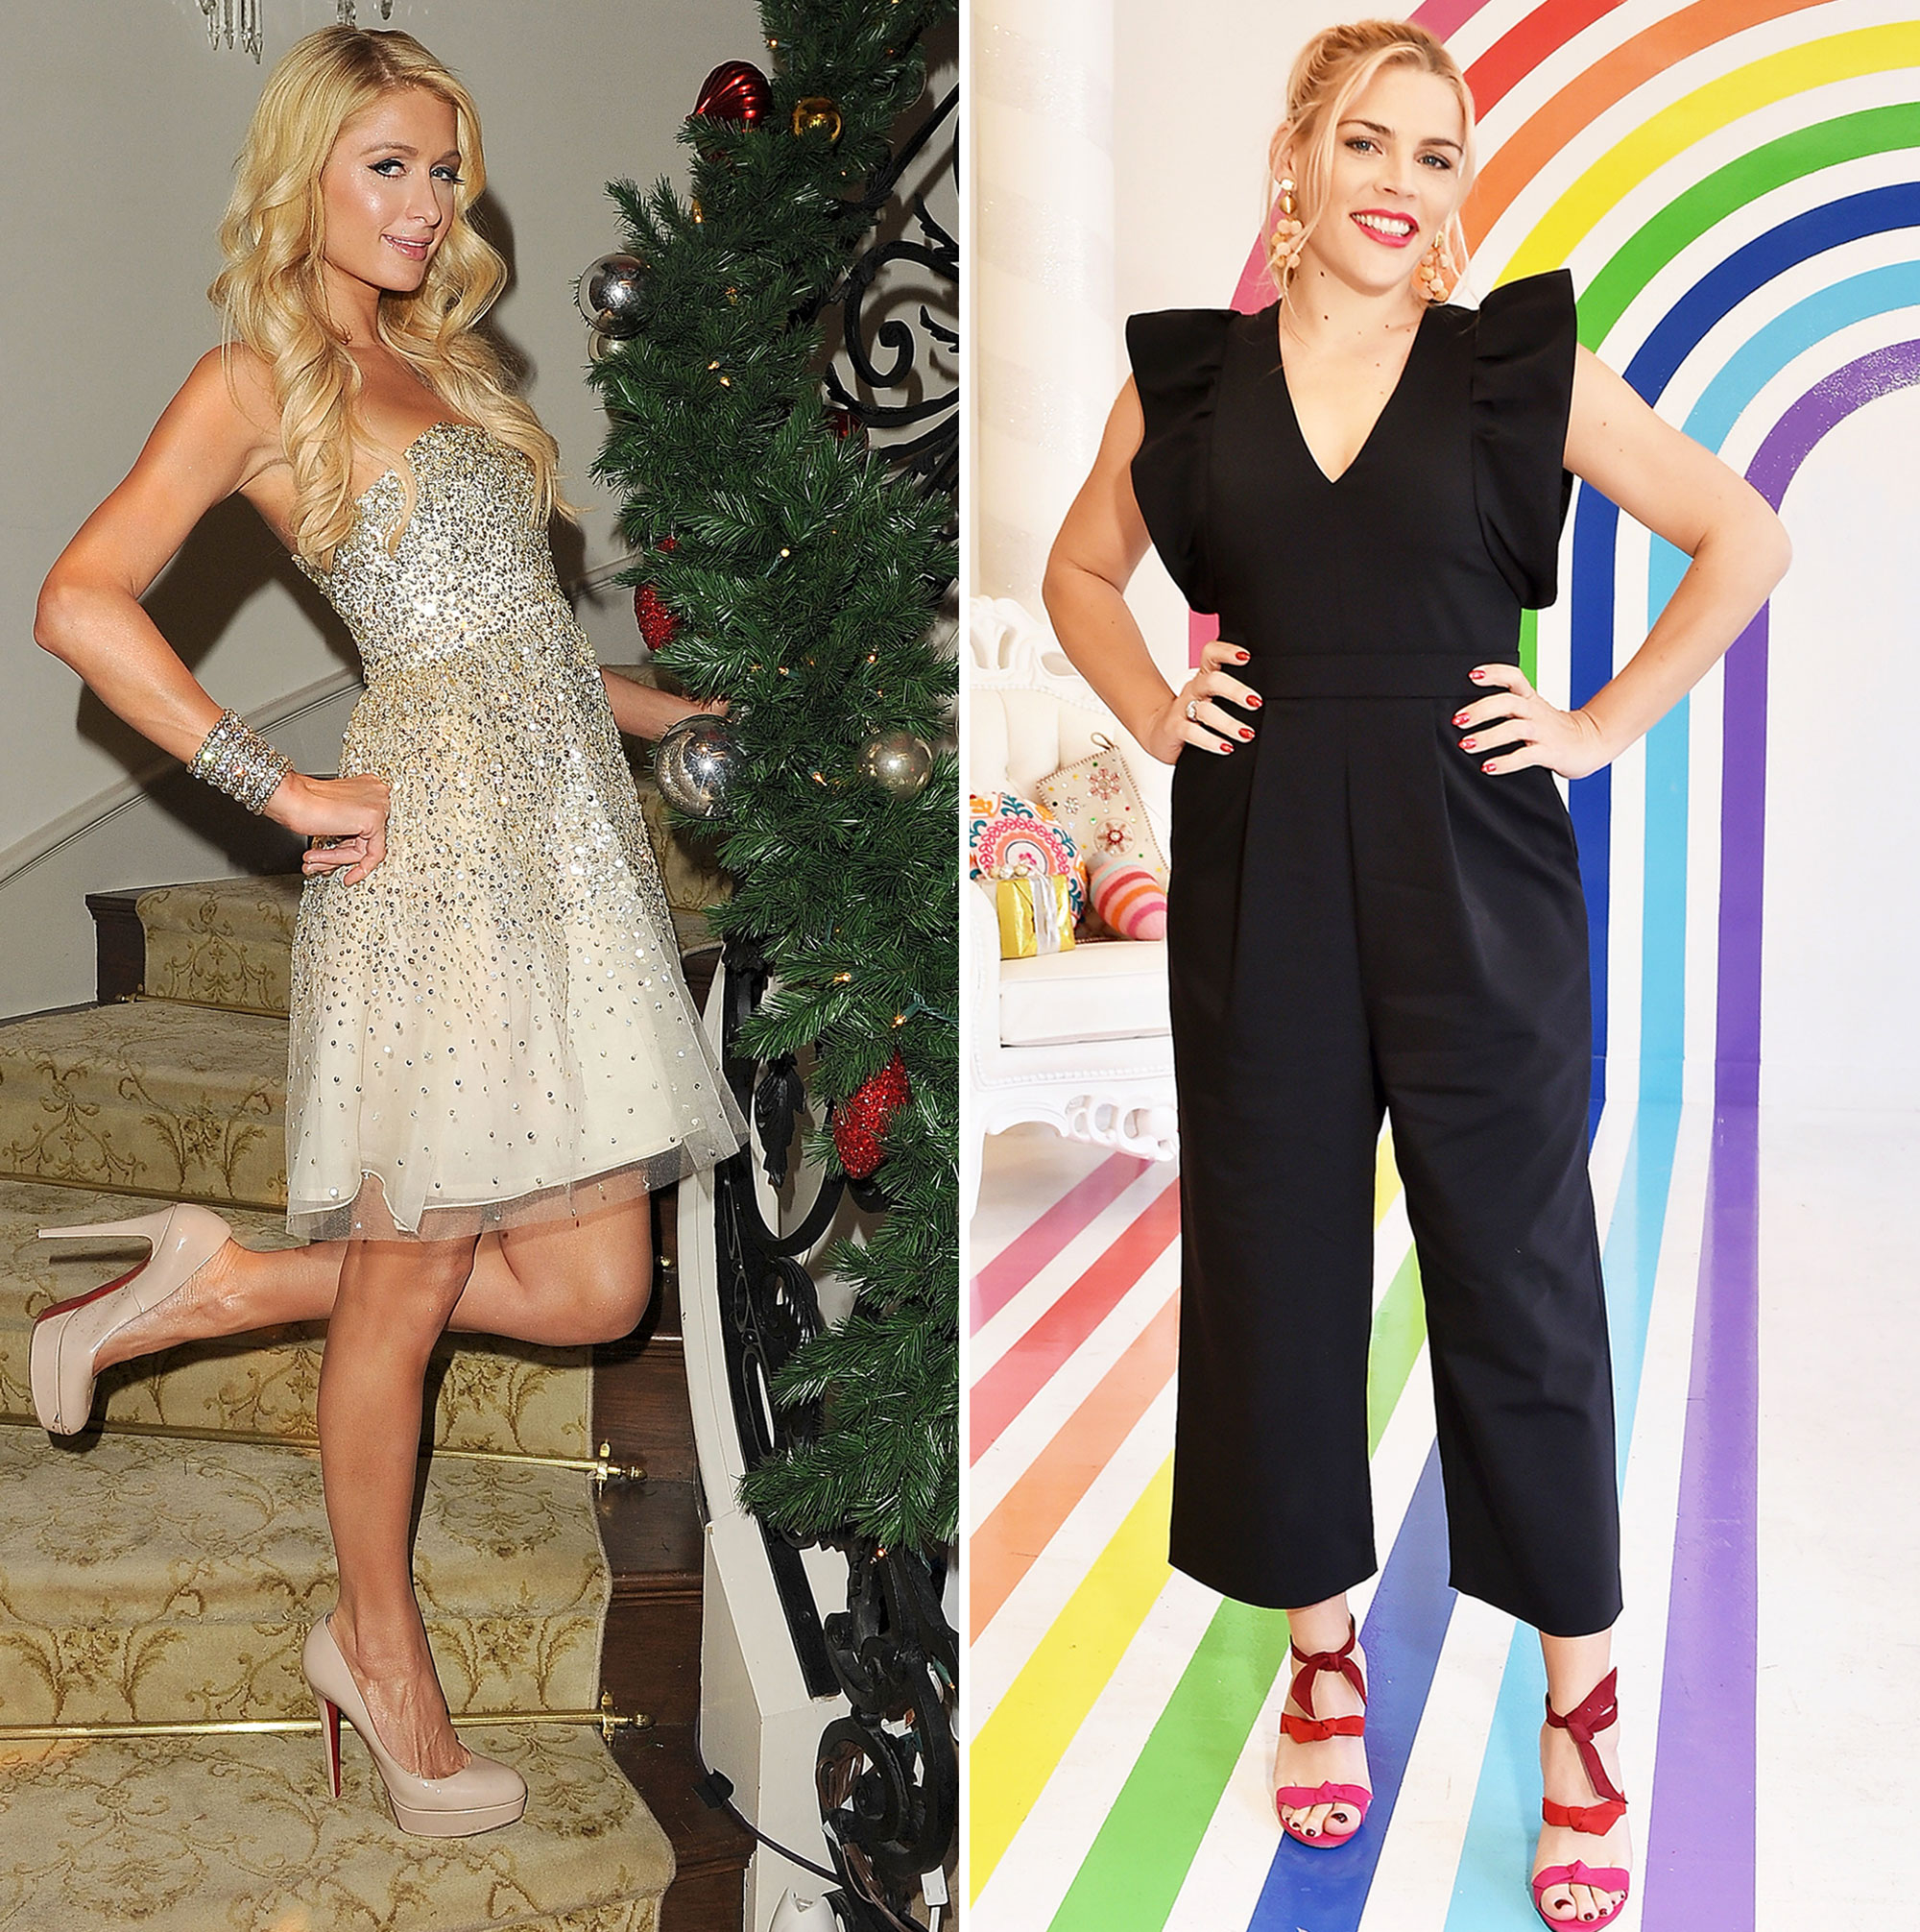 Naughty or Nice Gallery - Santa is making his list — and checking it twice! Celebrities including Paris Hilton and Busy Philipps tell Us Weekly whether or not they believe they've been naughty or nice this year.